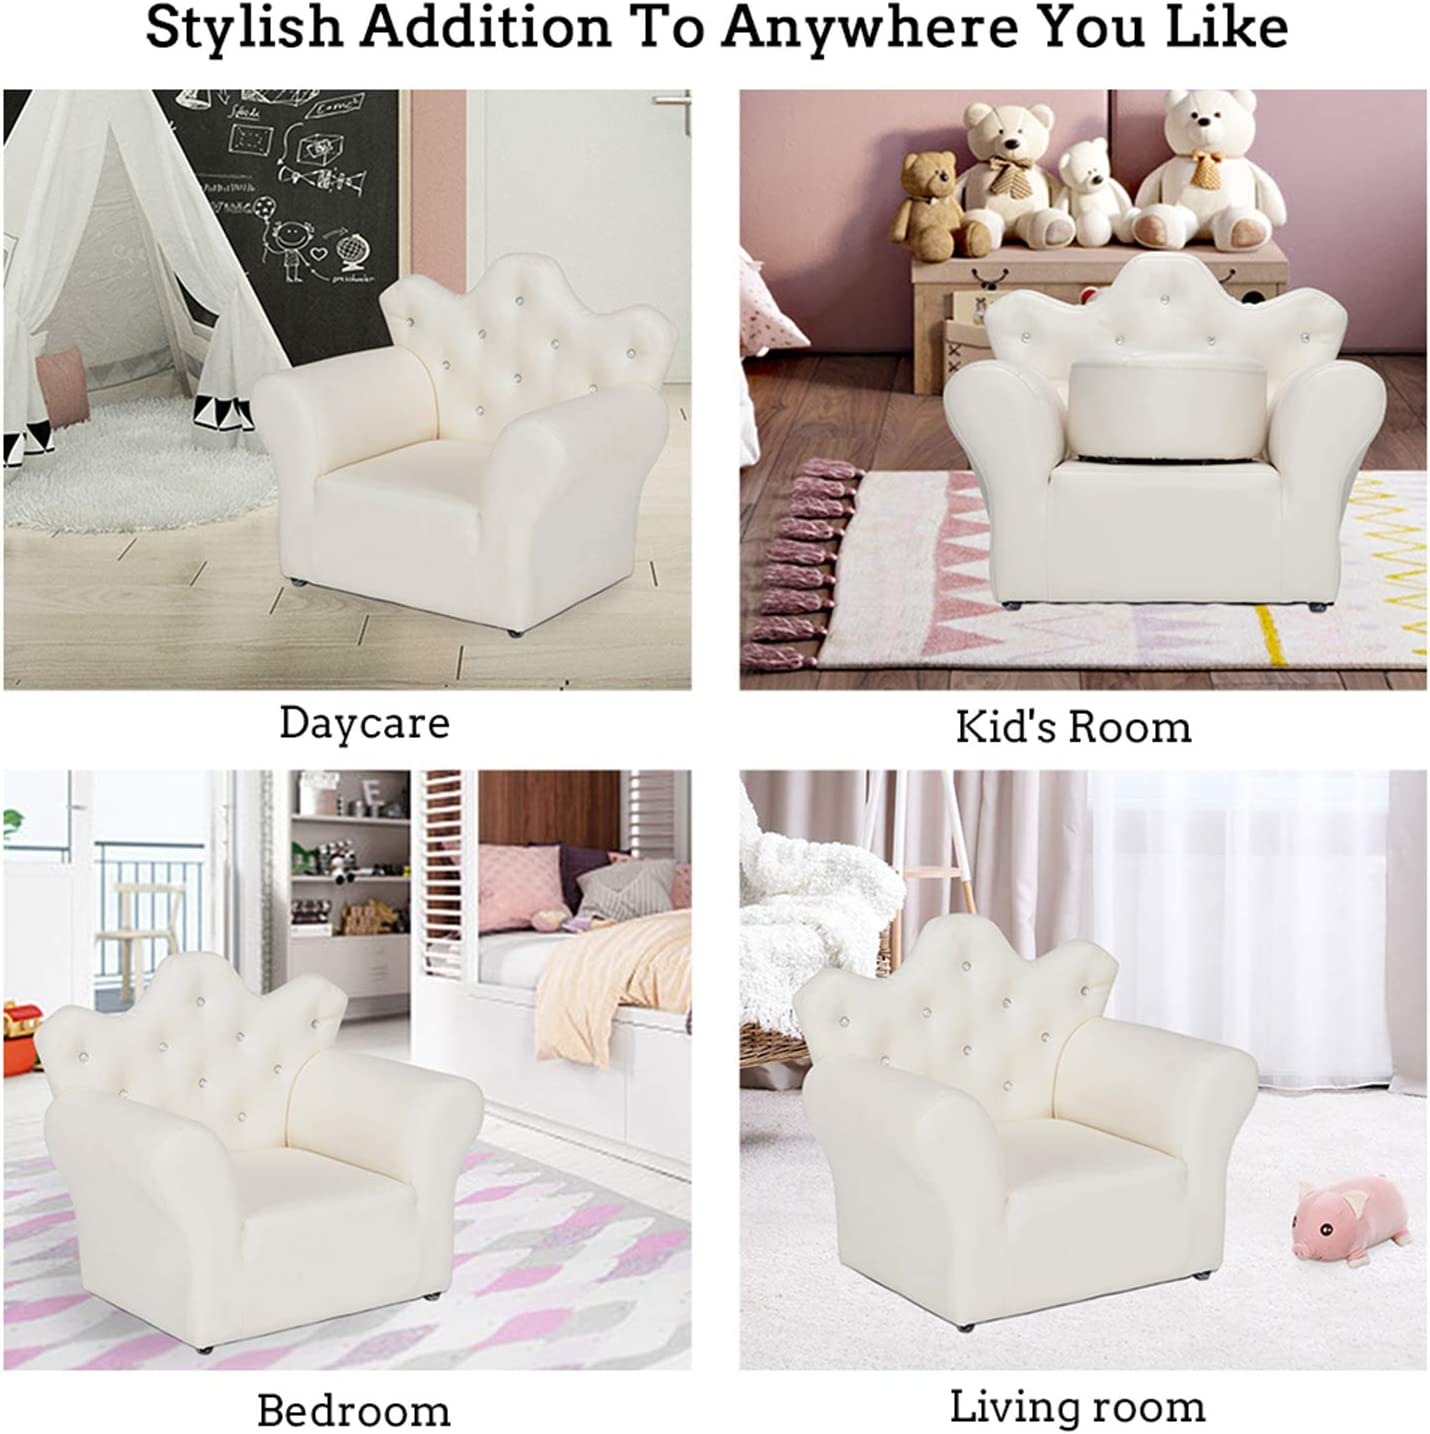 Kids sofa,LEIMIGO Kids armchair Soft and comfortable Special princess style Childrens chairs armchair(white)